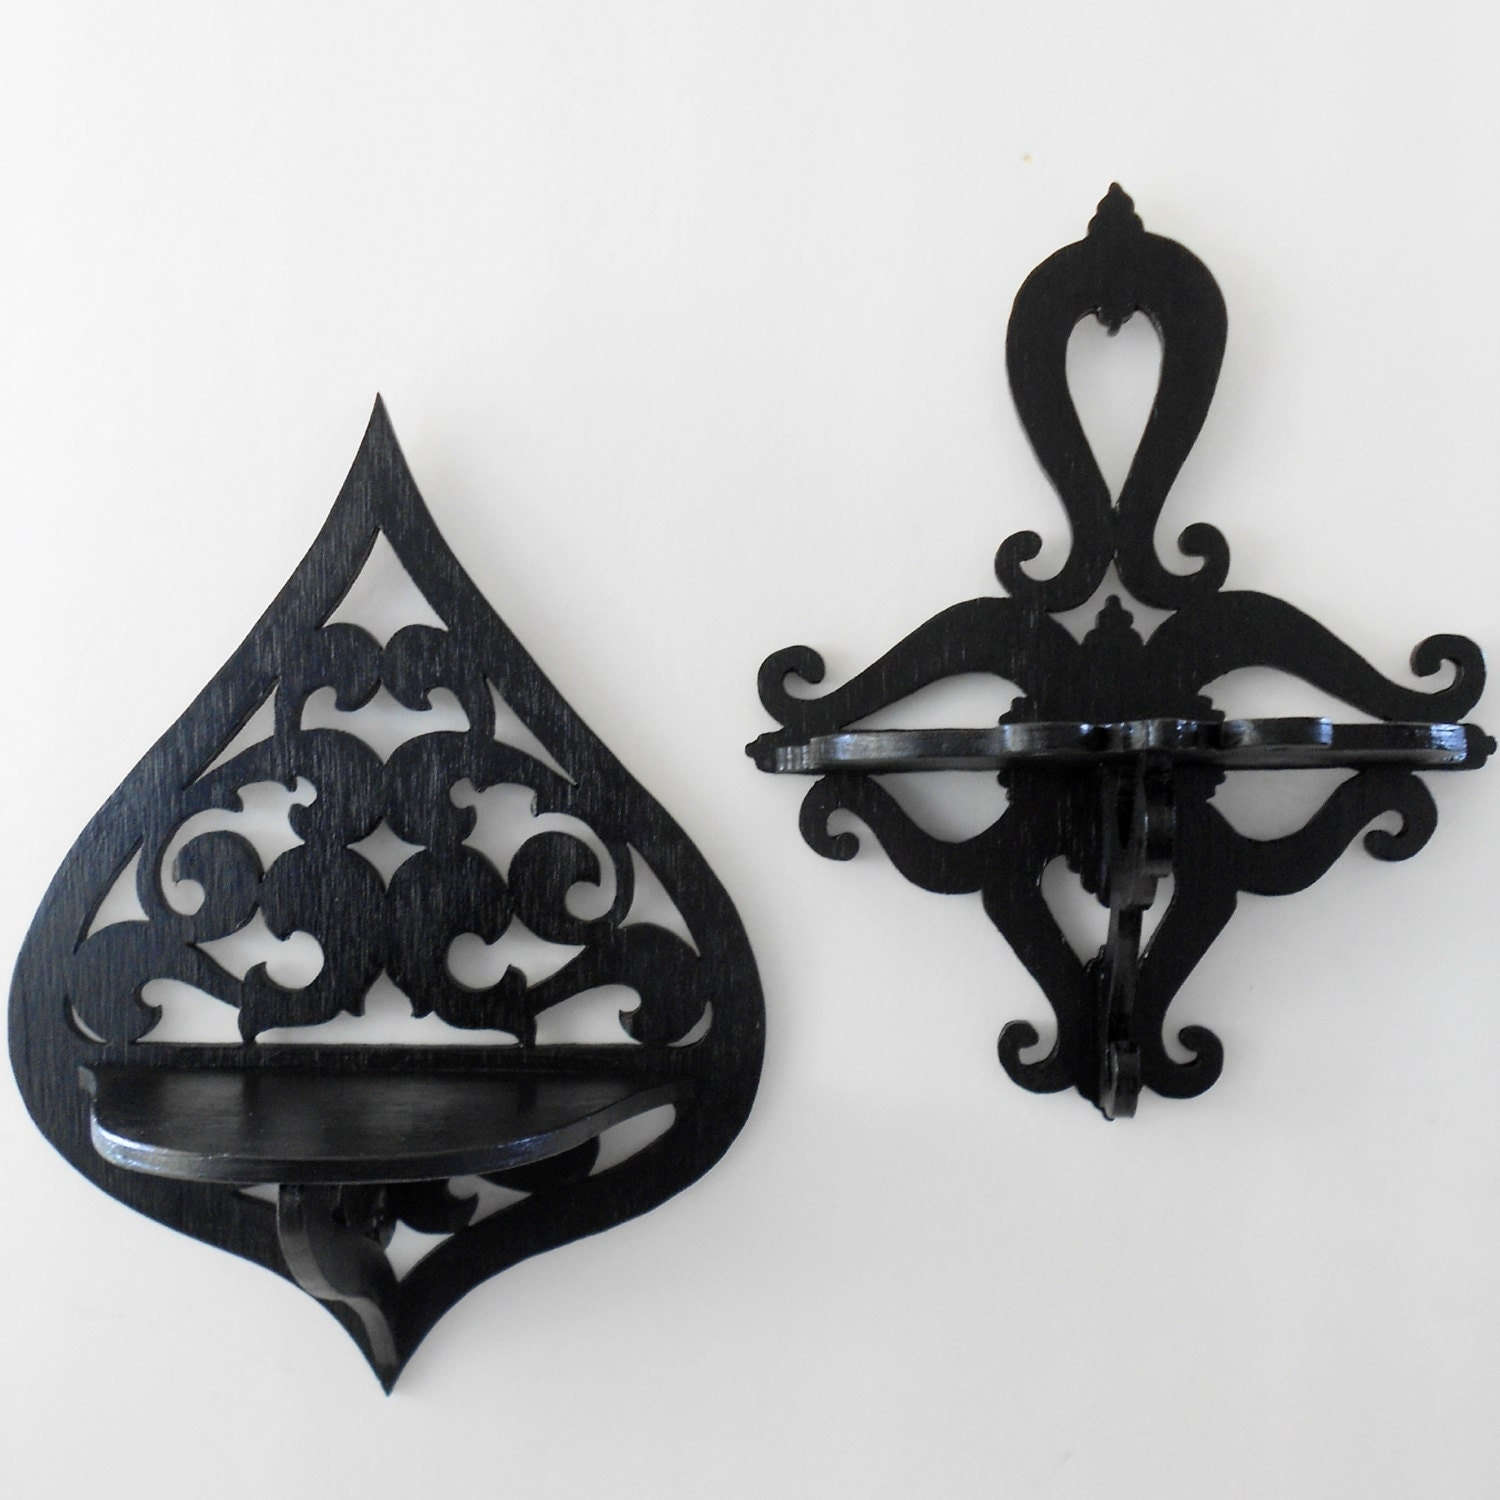 Wall Sconces Decor : Gothic Home Decor Wall Shelf Sconce Decorative Shelf